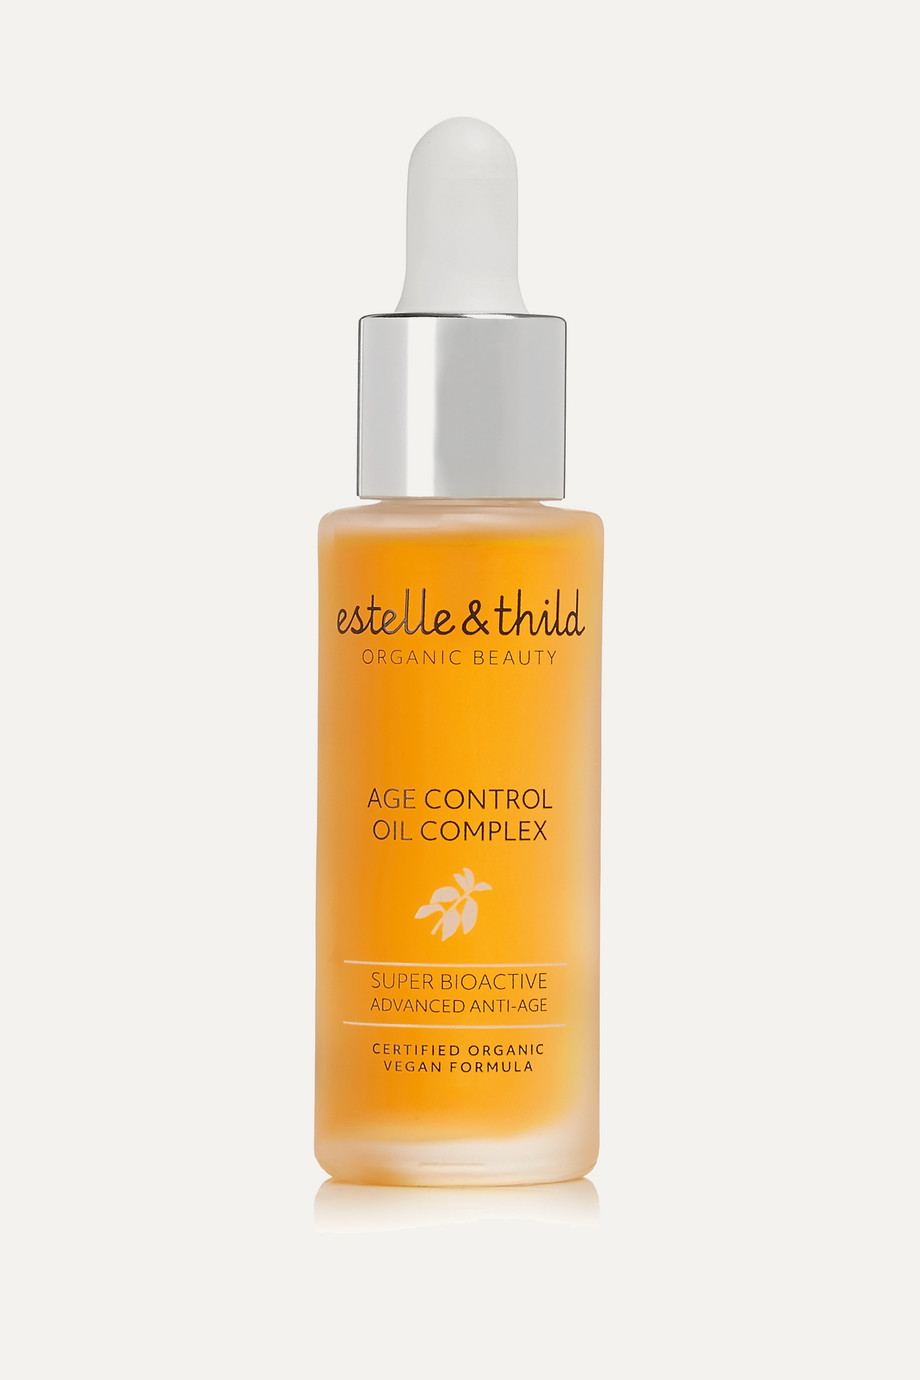 Super Bioactive Repairing Oil Complex, 30ml, by Estelle & Thild